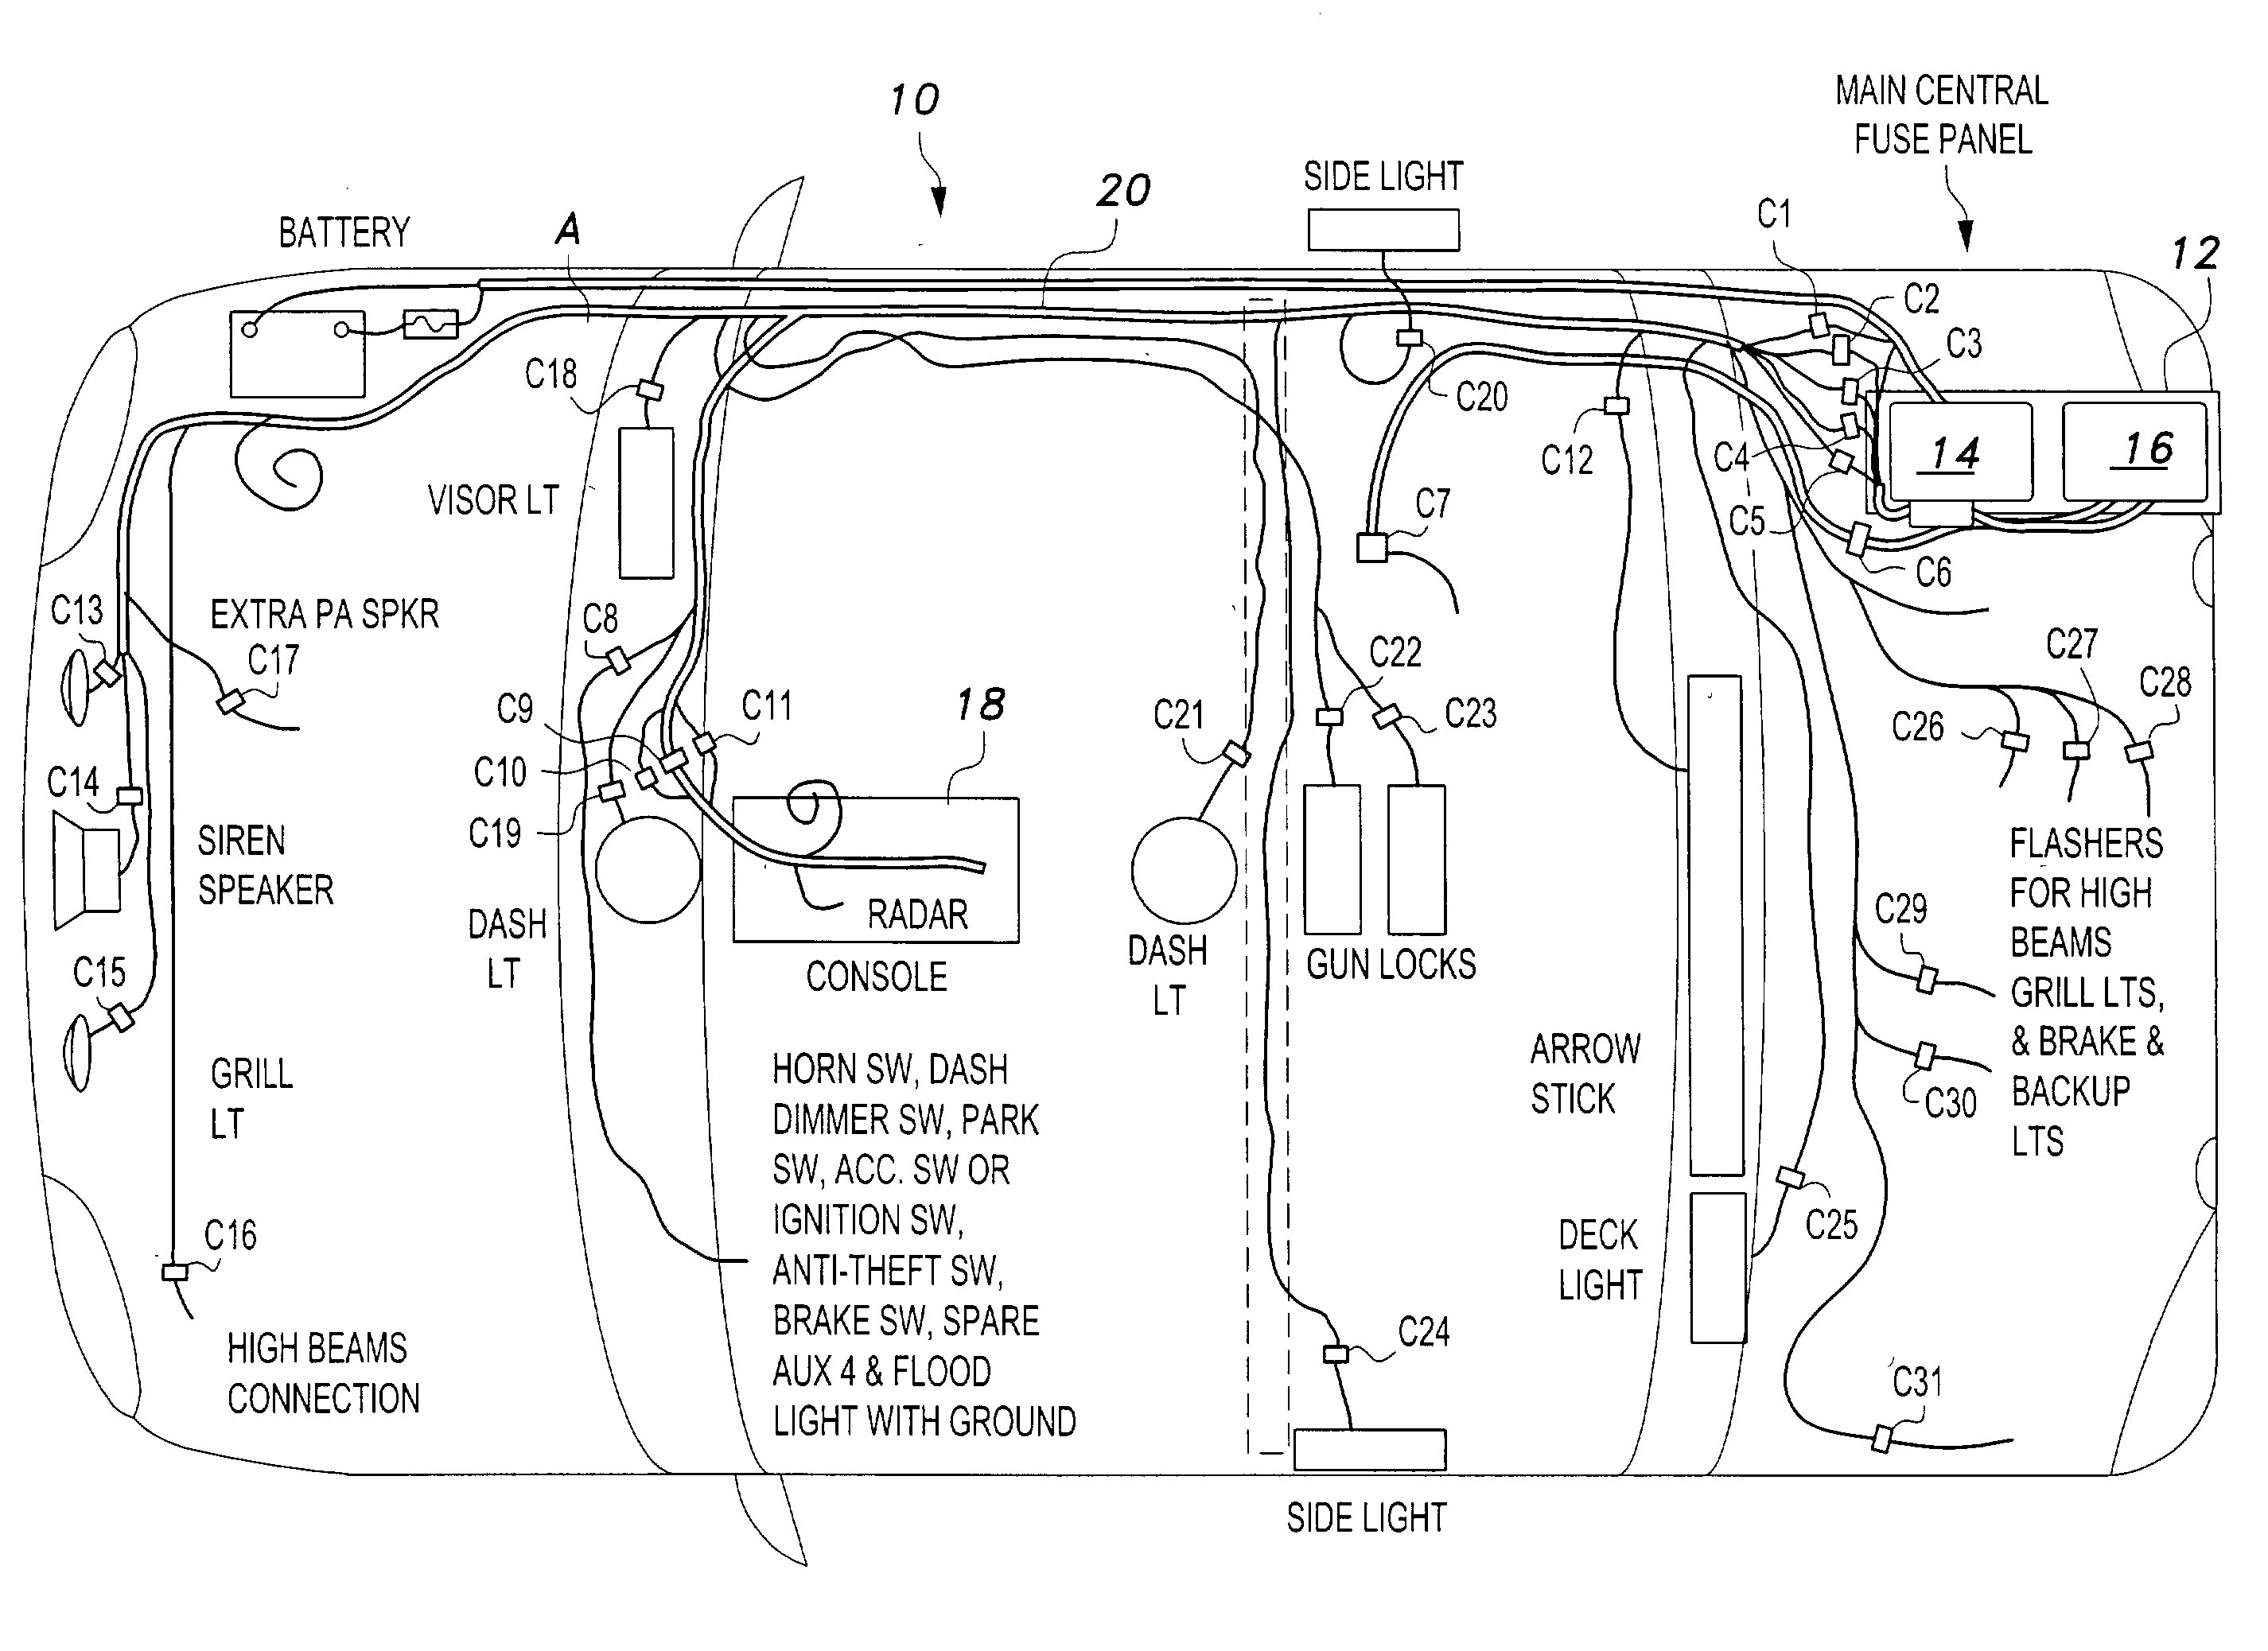 Wiring Diagram For Whelen Edge 9000 New Whelen Liberty Lightbar Wiring Diagram Wiring Solutions